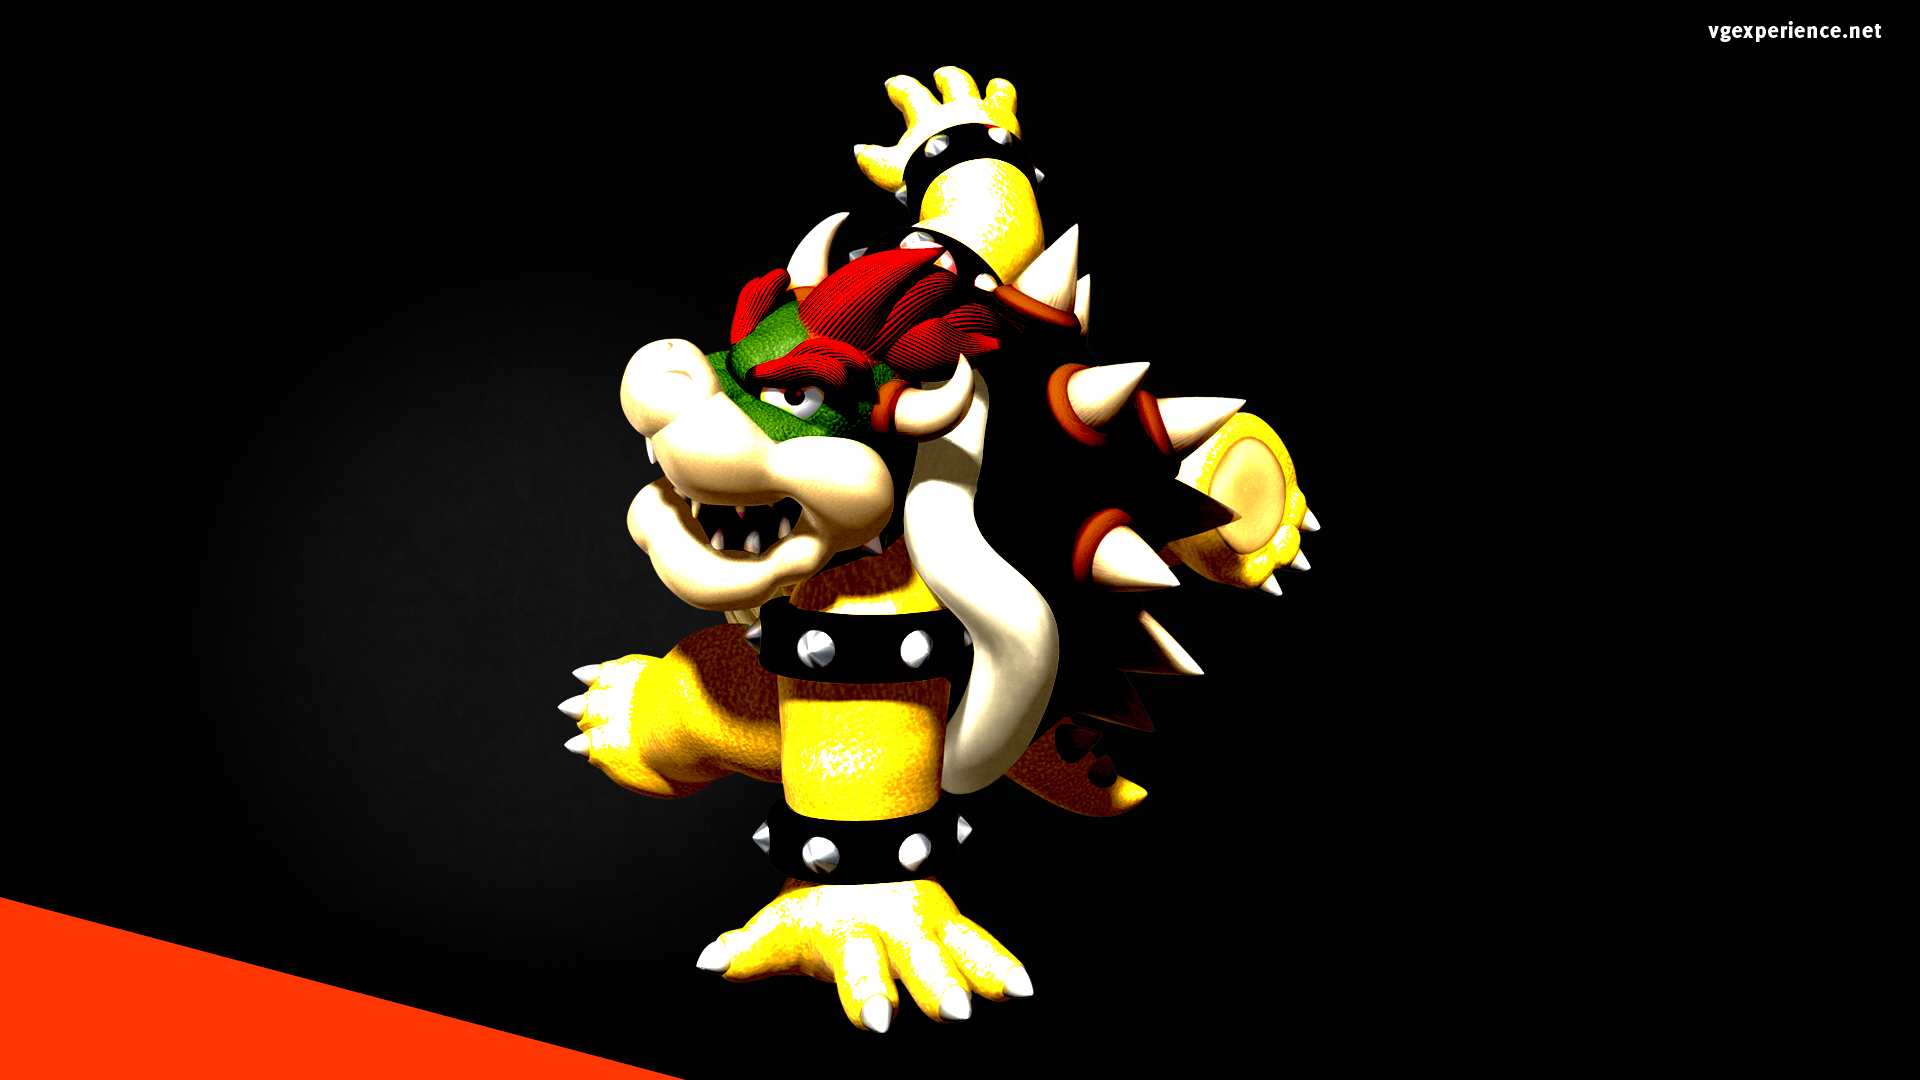 bowser wallpapers high quality download free